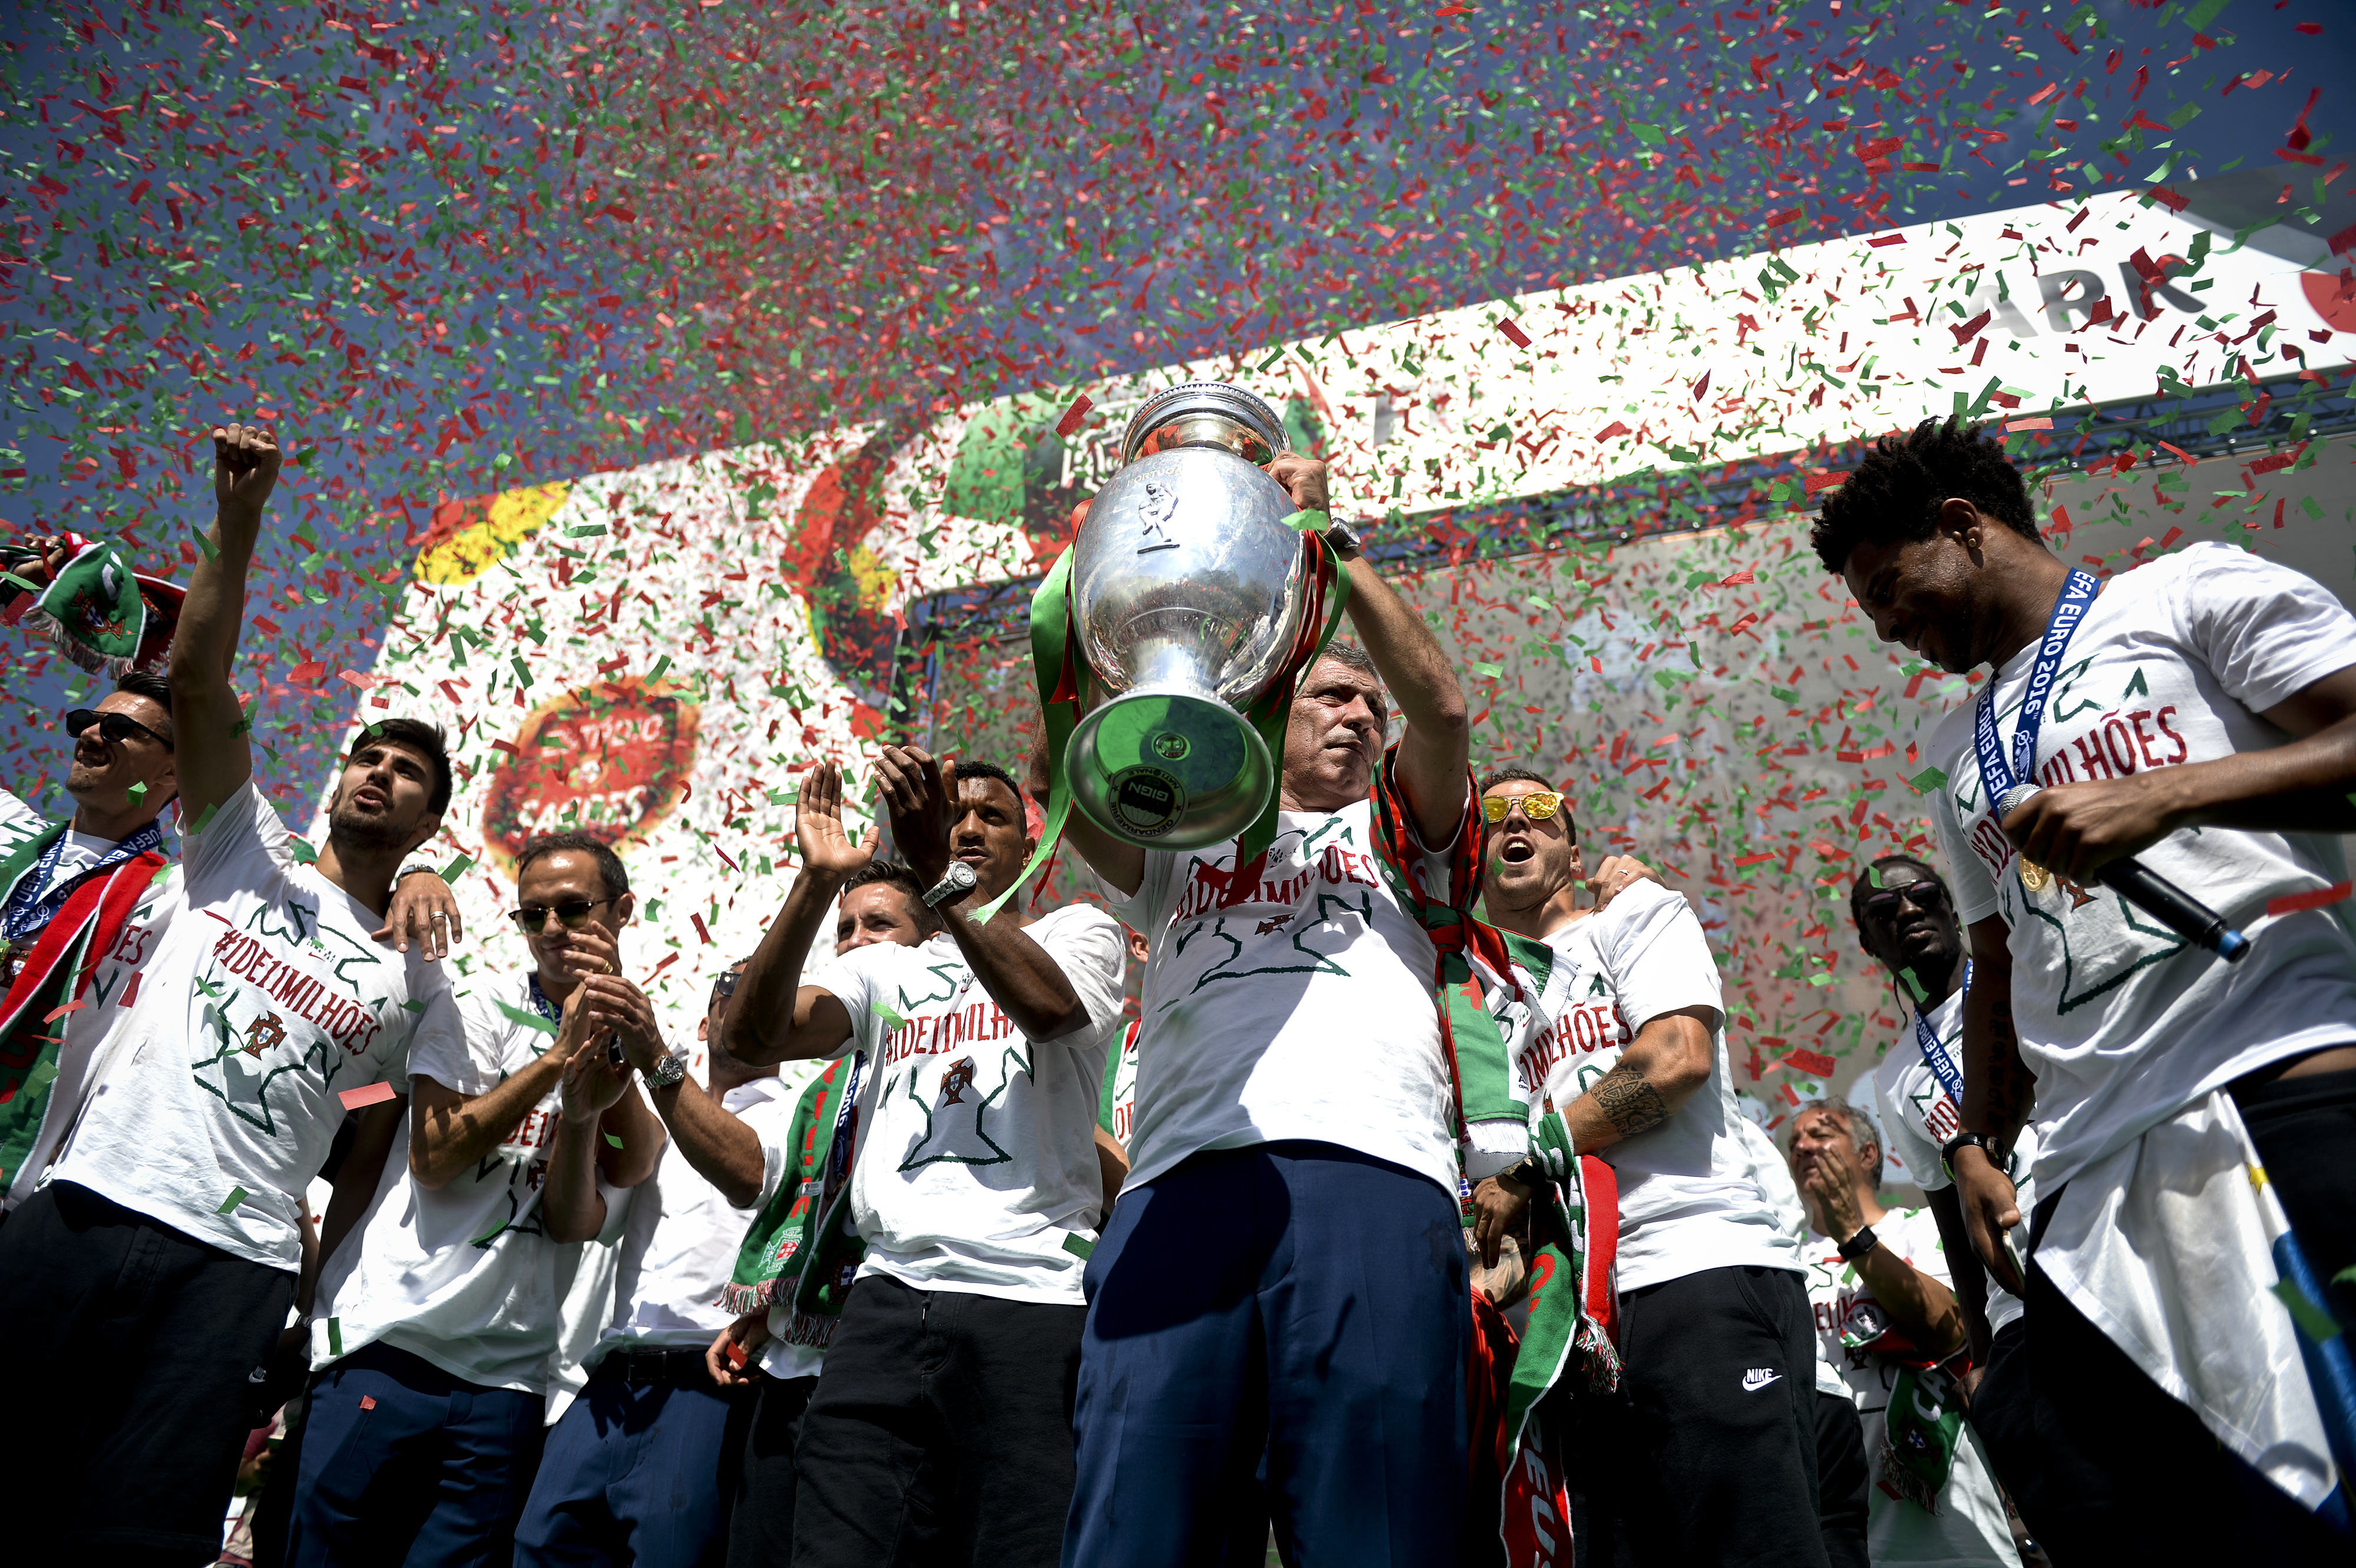 Portugal's head coach Fernando Santos (C) holds the trophy as he celebrates with his players on a stage at Alameda square in Lisbon on July 11, 2016 where thousands of supporters welcome them with scarfs and flags to celebrate their victory over France in their Euro 2016 final played yesterday. The Portuguese football team returned home to a heroes' welcome today after their upset 1-0 win triumph over France in the Euro 2016 final.  / AFP PHOTO / PATRICIA DE MELO MOREIRA